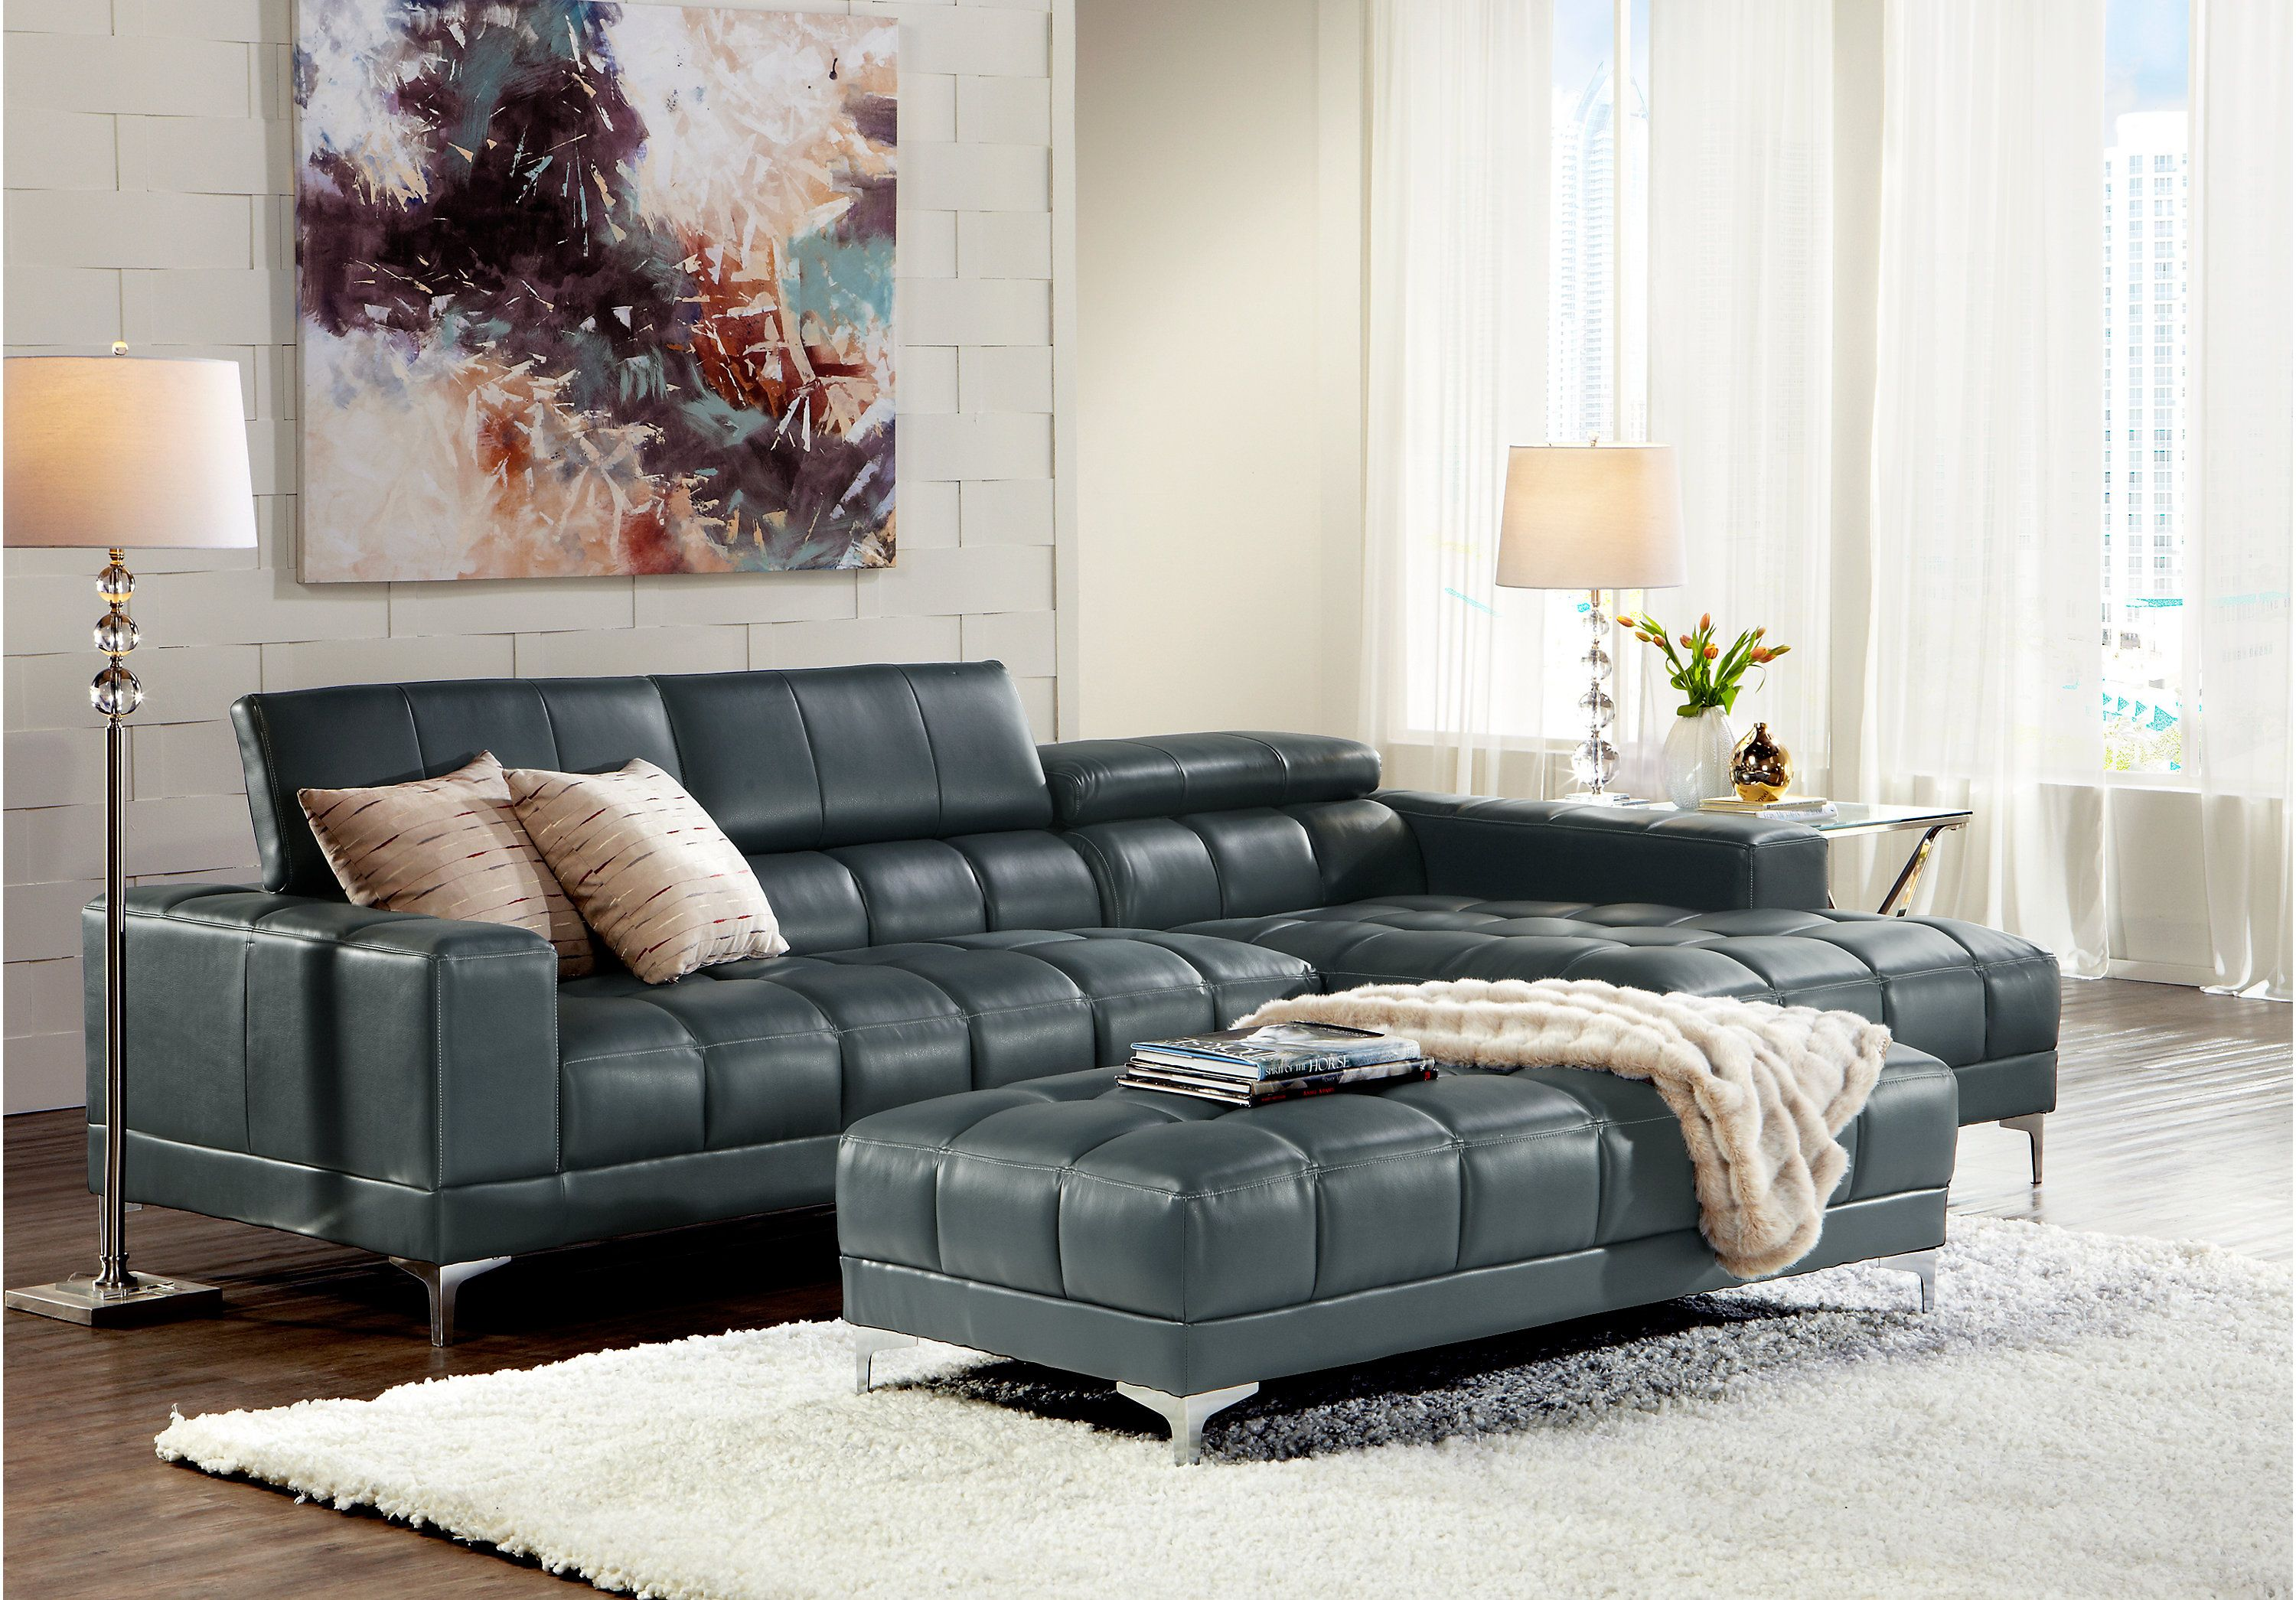 sunset for navy blueal center size by concept image reclining roma sectionals discount poundex of microfiber sofas elegant impressive sale full sectional blue sofa